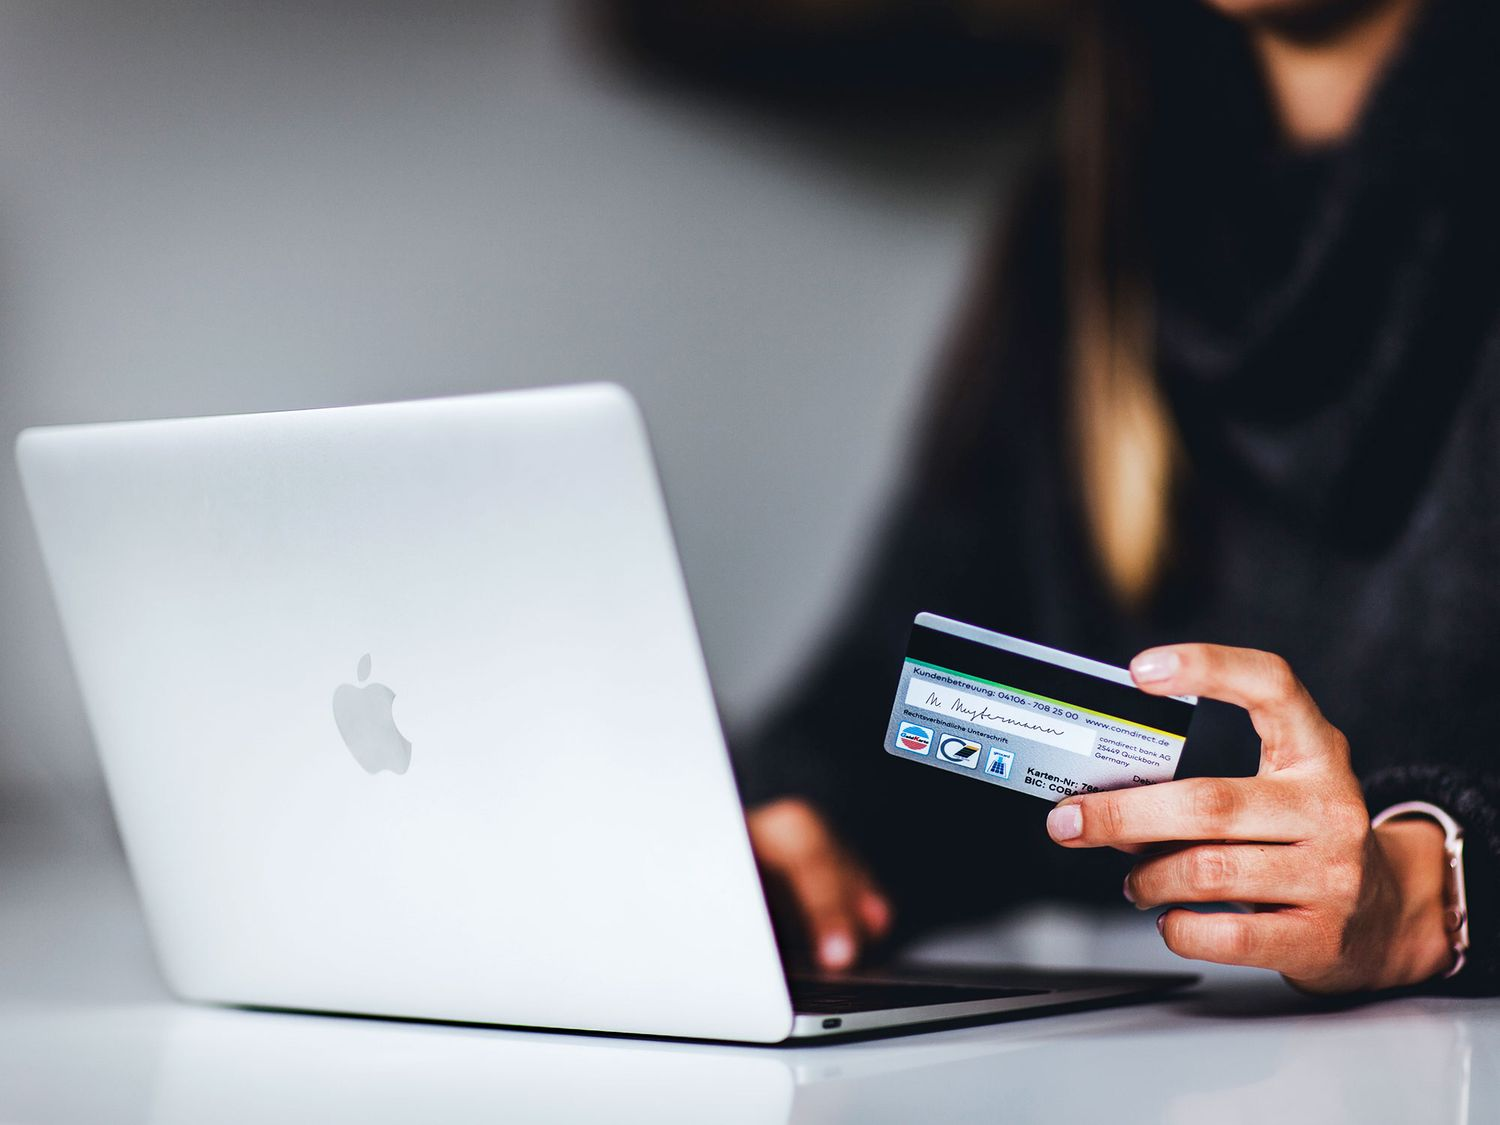 E-commerce has revolutionized many industries and the art world is no longer lagging behind, buying an artwork online with a credit card has never been this easy.